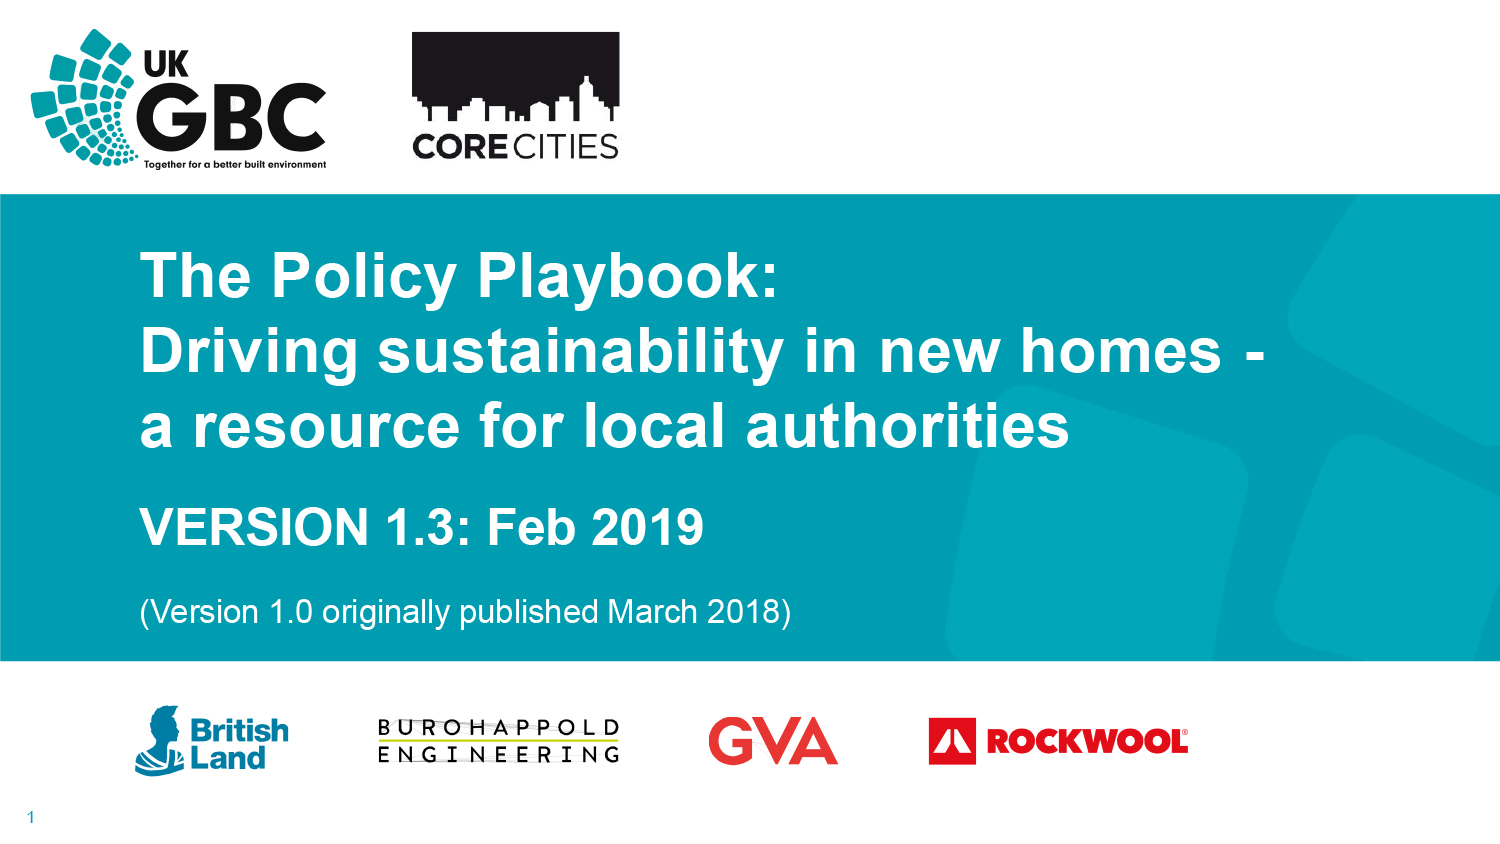 The Policy Playbook: Driving sustainability in new homes - a resource for local authorities